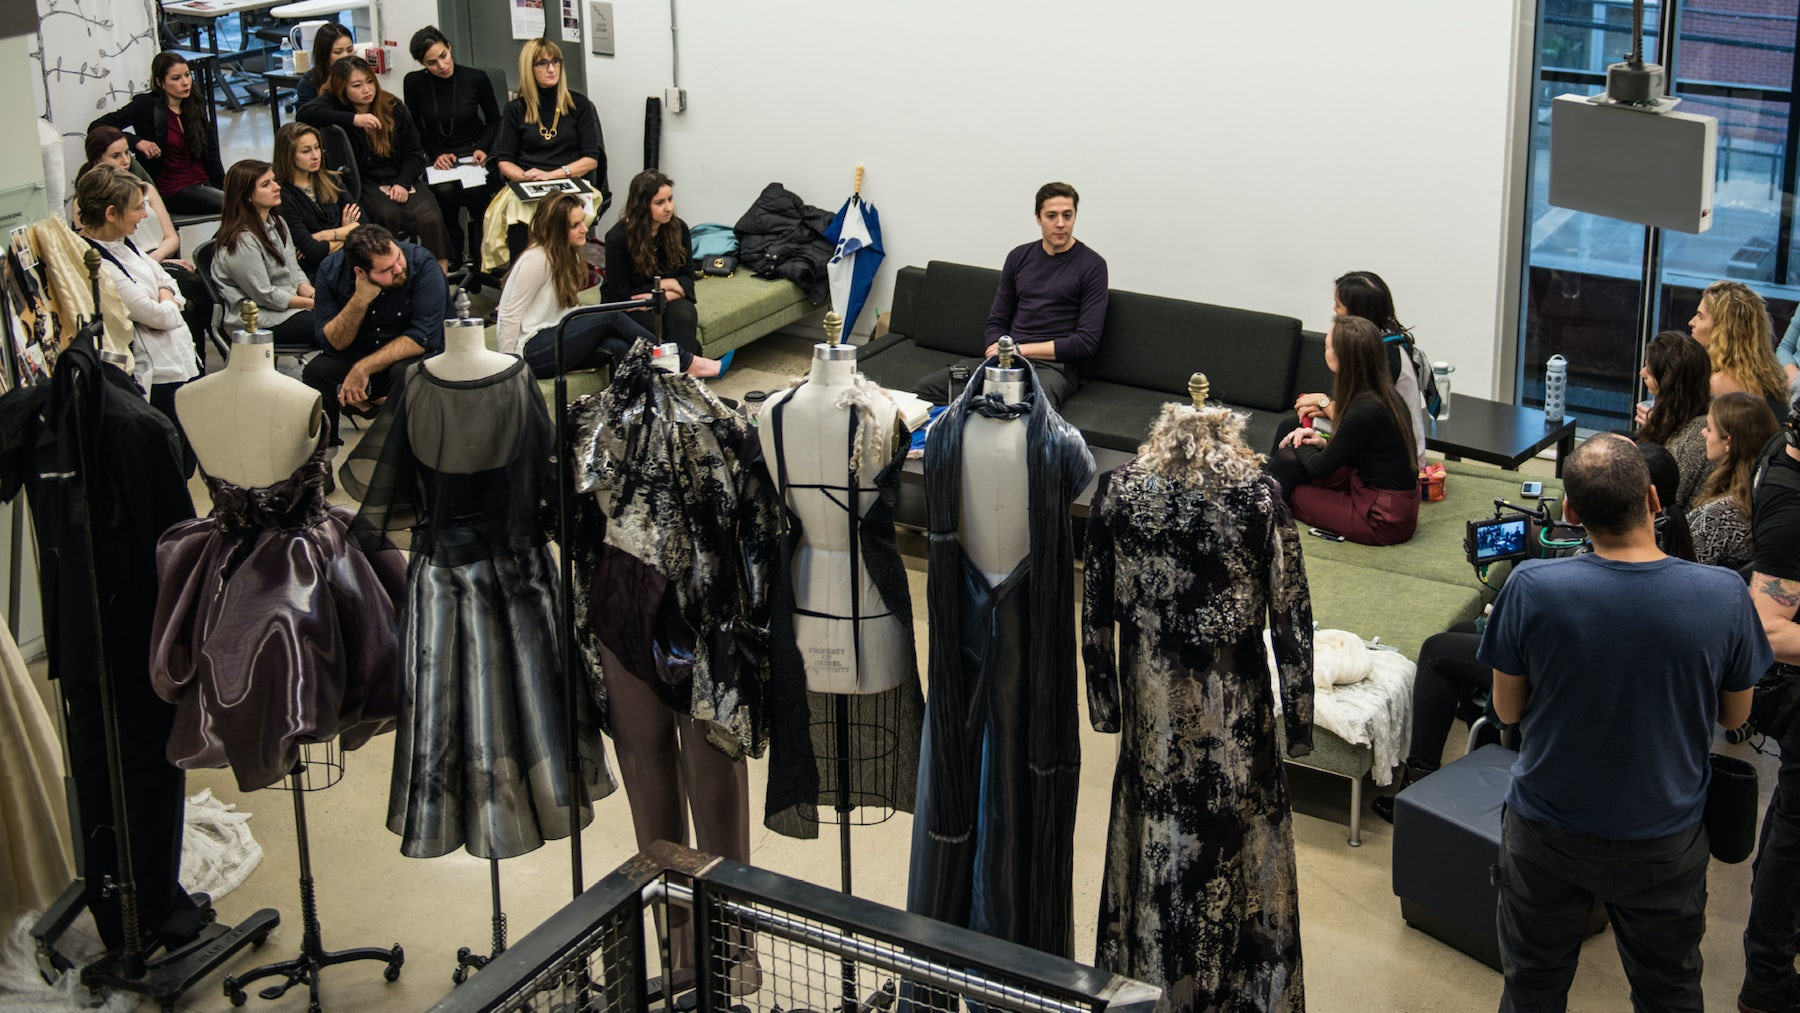 Top Fashion Schools In The Usa A State Of Oversupply Education The State Of Education Bof